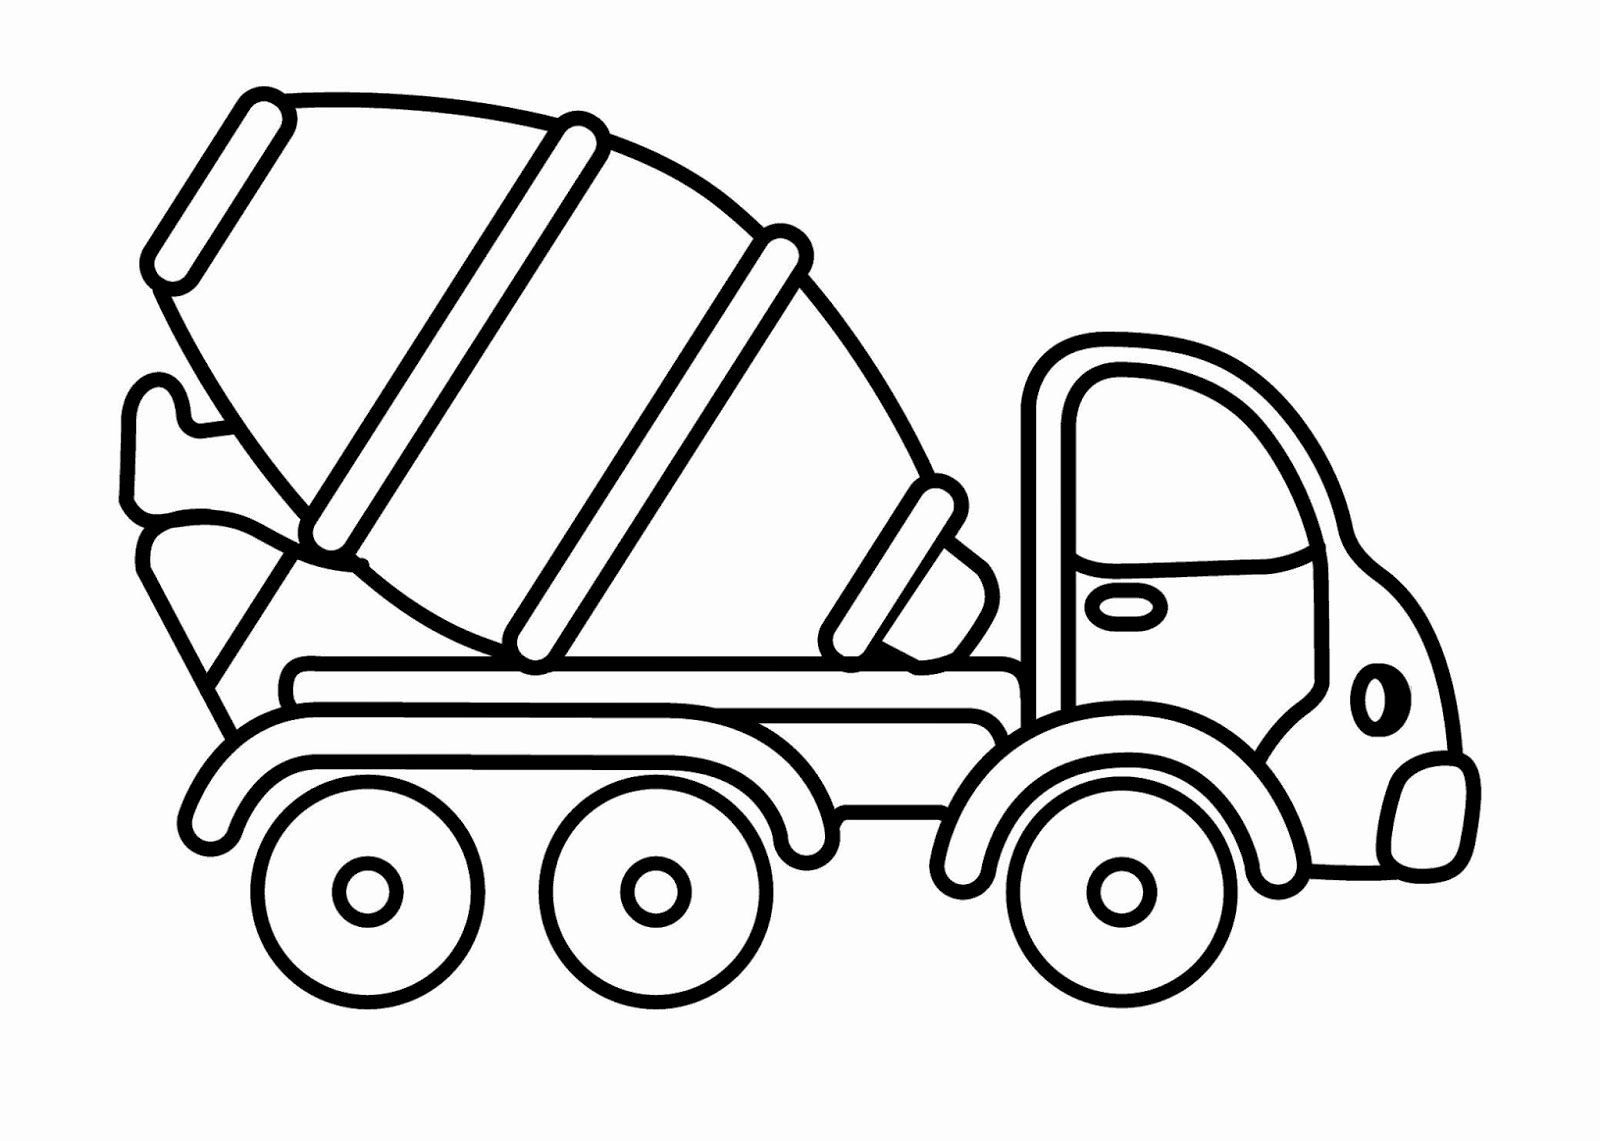 Transportation Coloring Pages Pdf With Images Cars Coloring